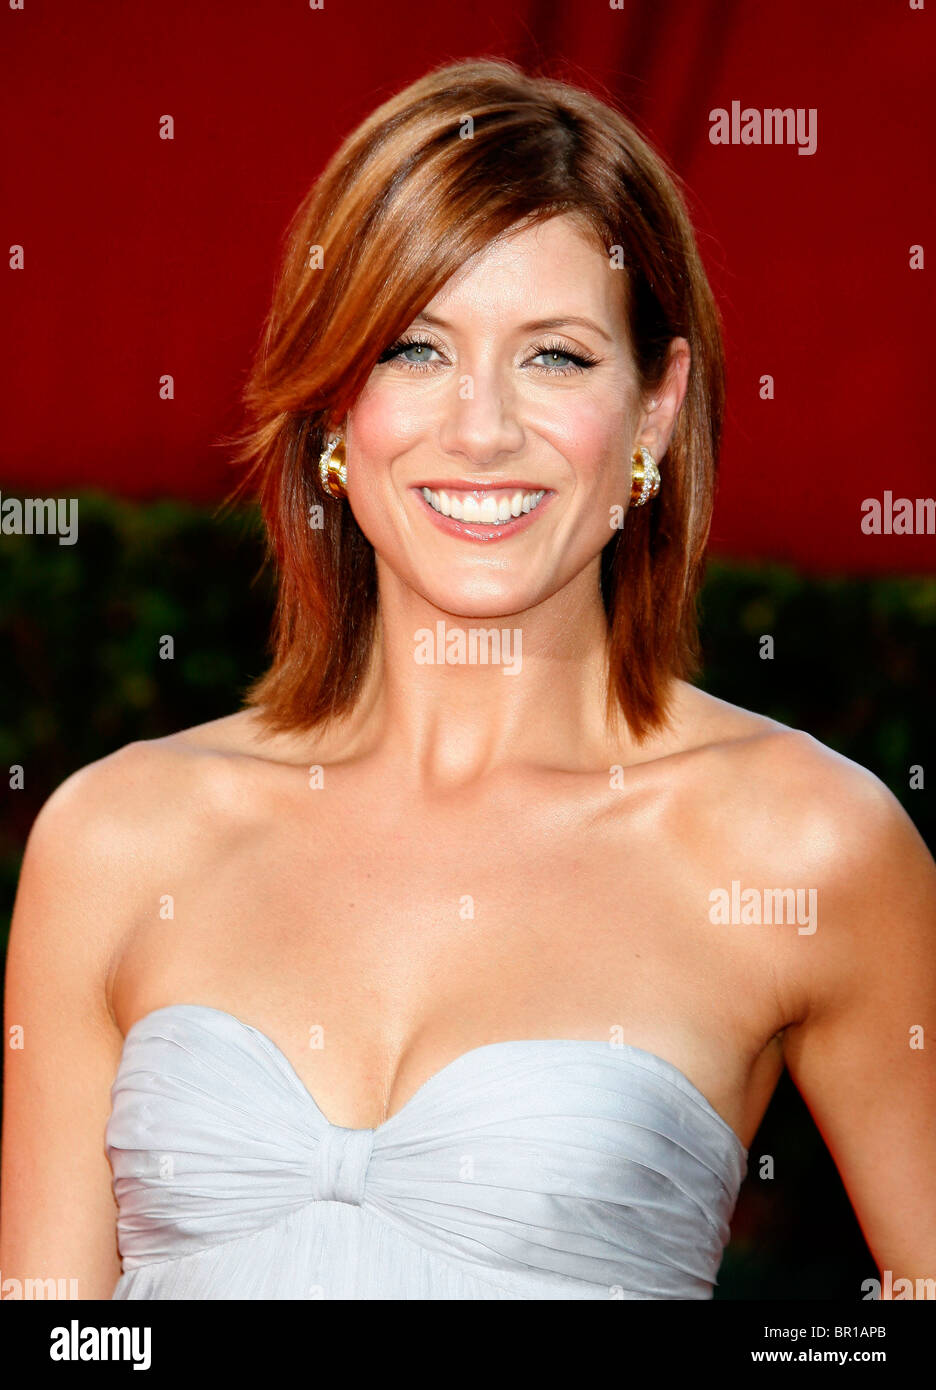 KATE WALSH - US-Schauspielerin im November 2009. Foto Jeffrey Mayer Stockbild